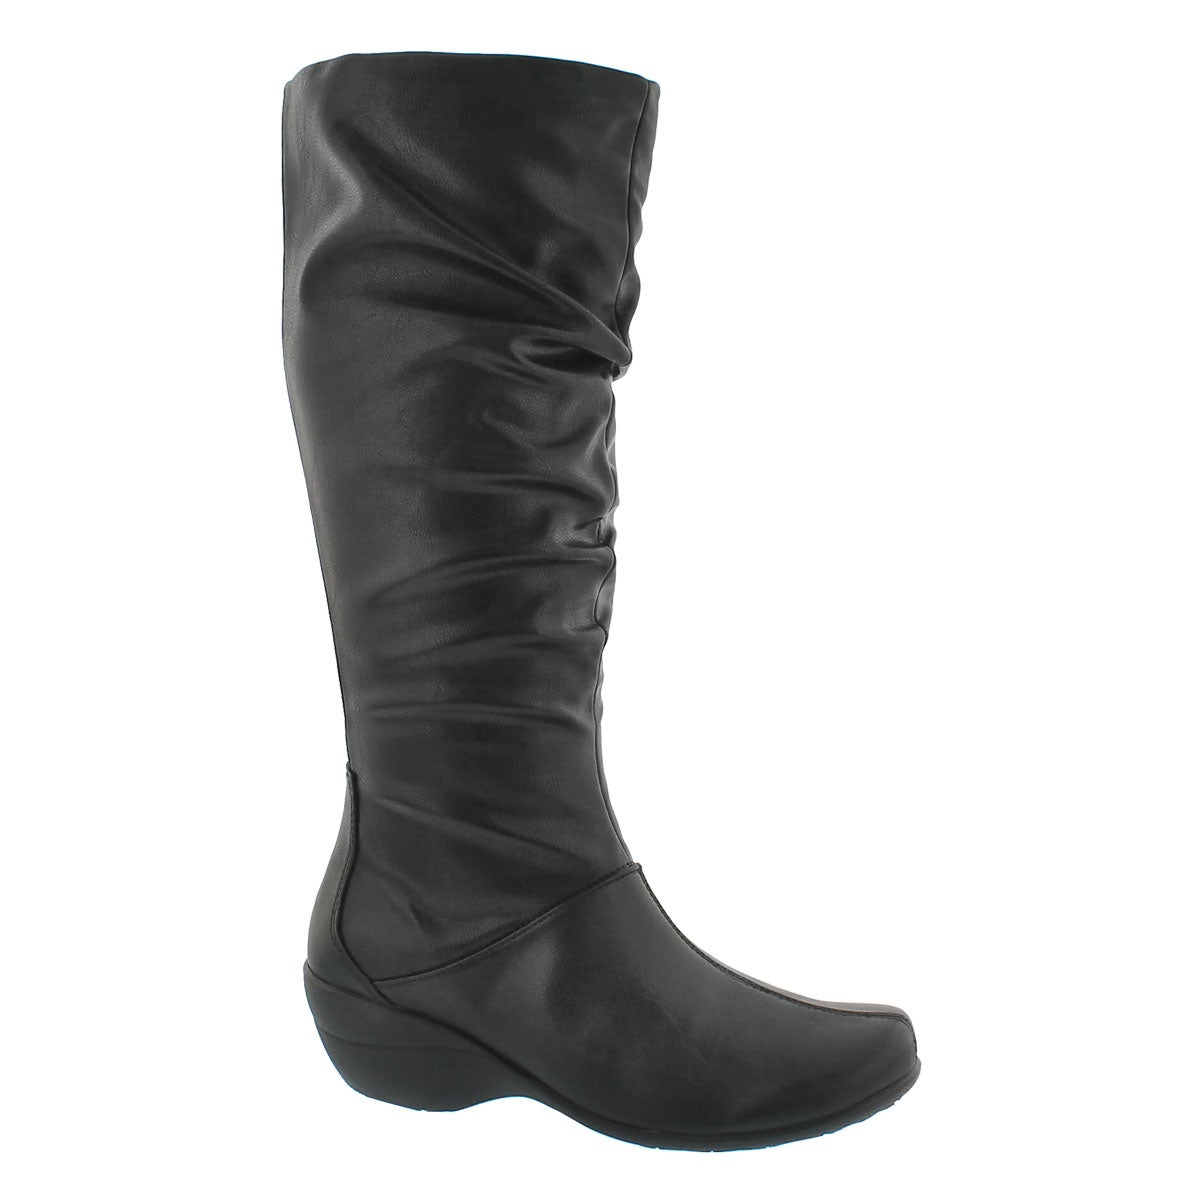 Women's IVA KANA IIV black tall boots